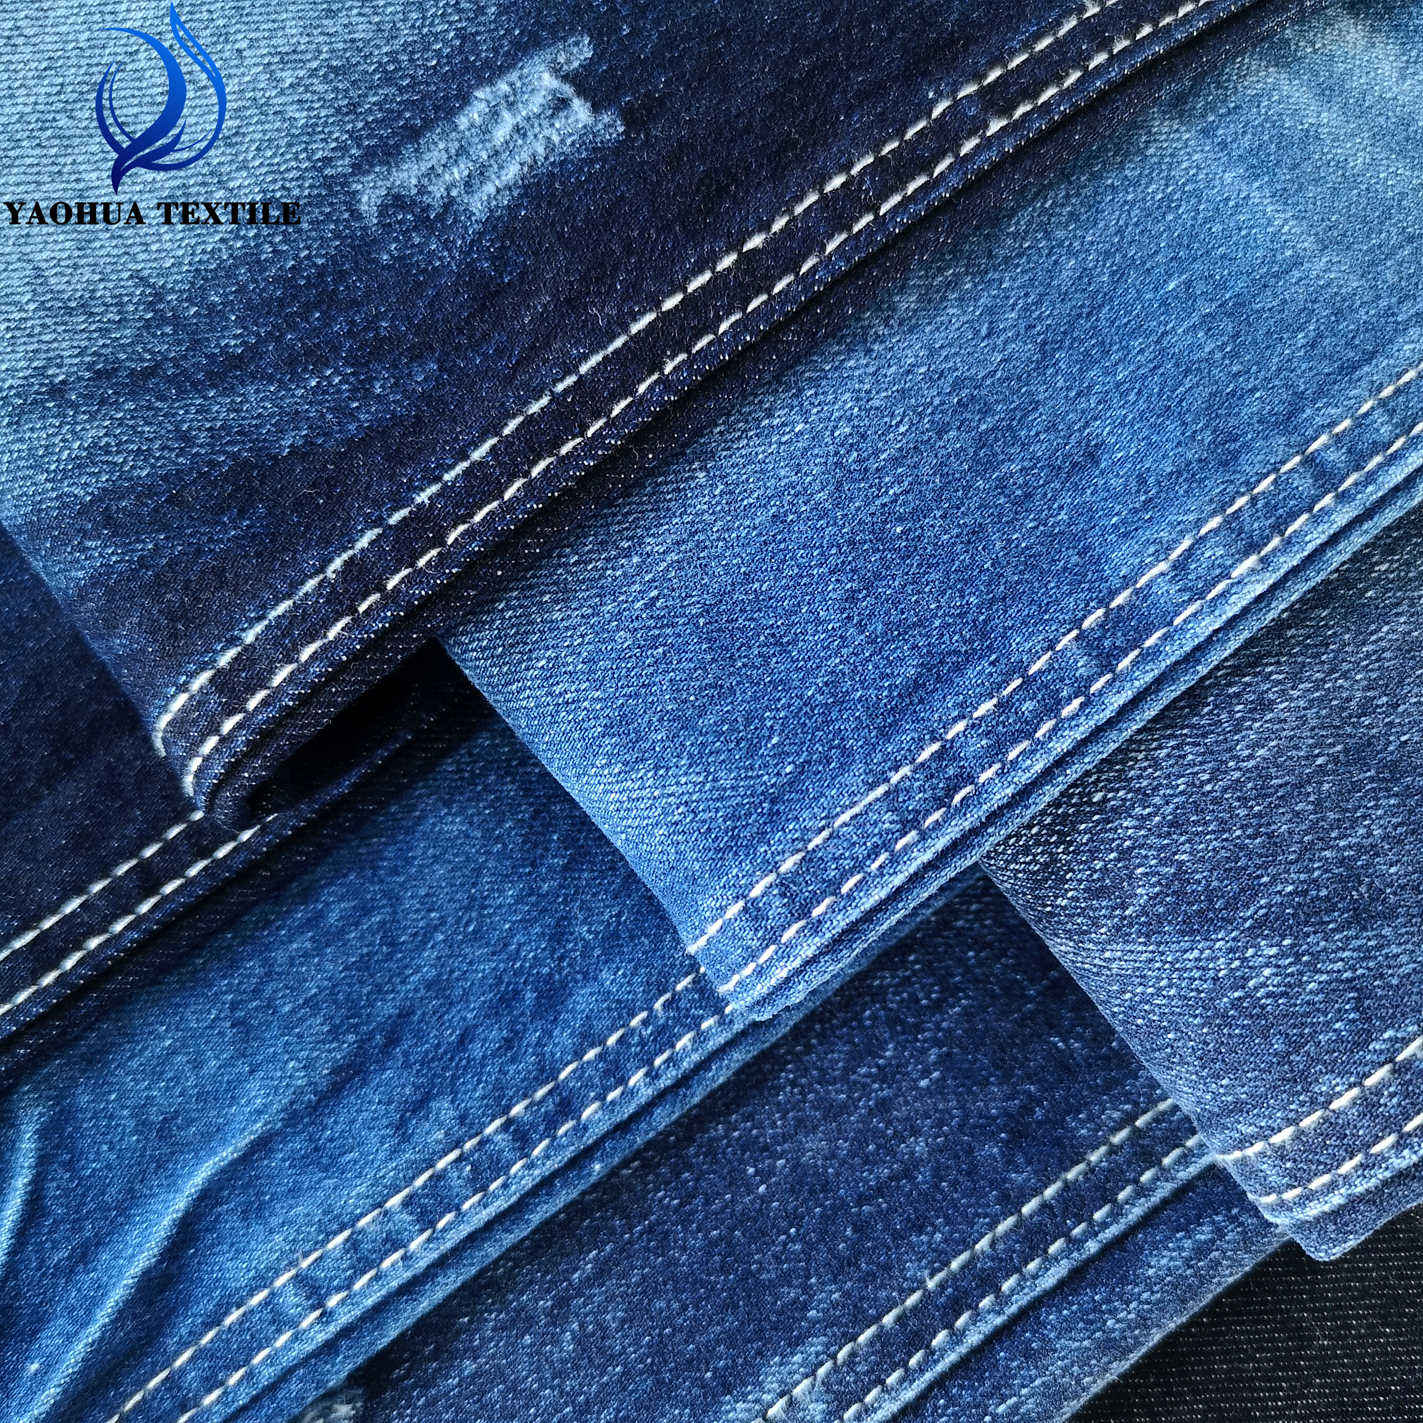 2046 Organic cotton lycra China product yarn dyed good stretch jeans denim fabric for lady and man